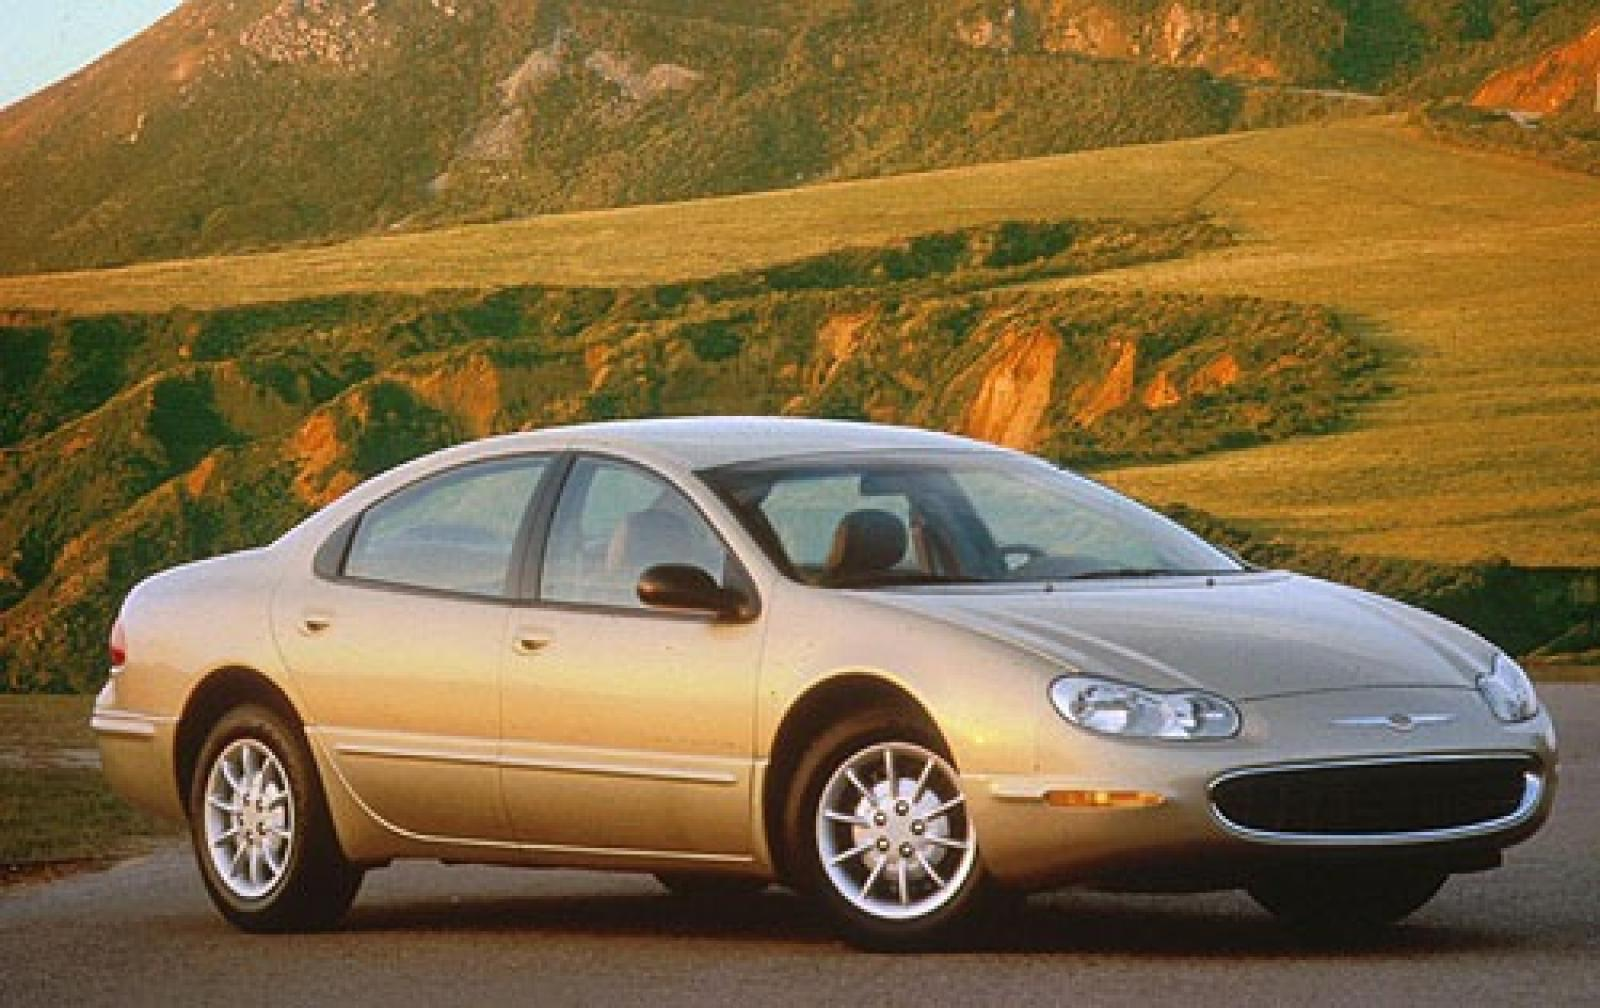 Chrysler LHS II 1998 - 2001 Sedan #4